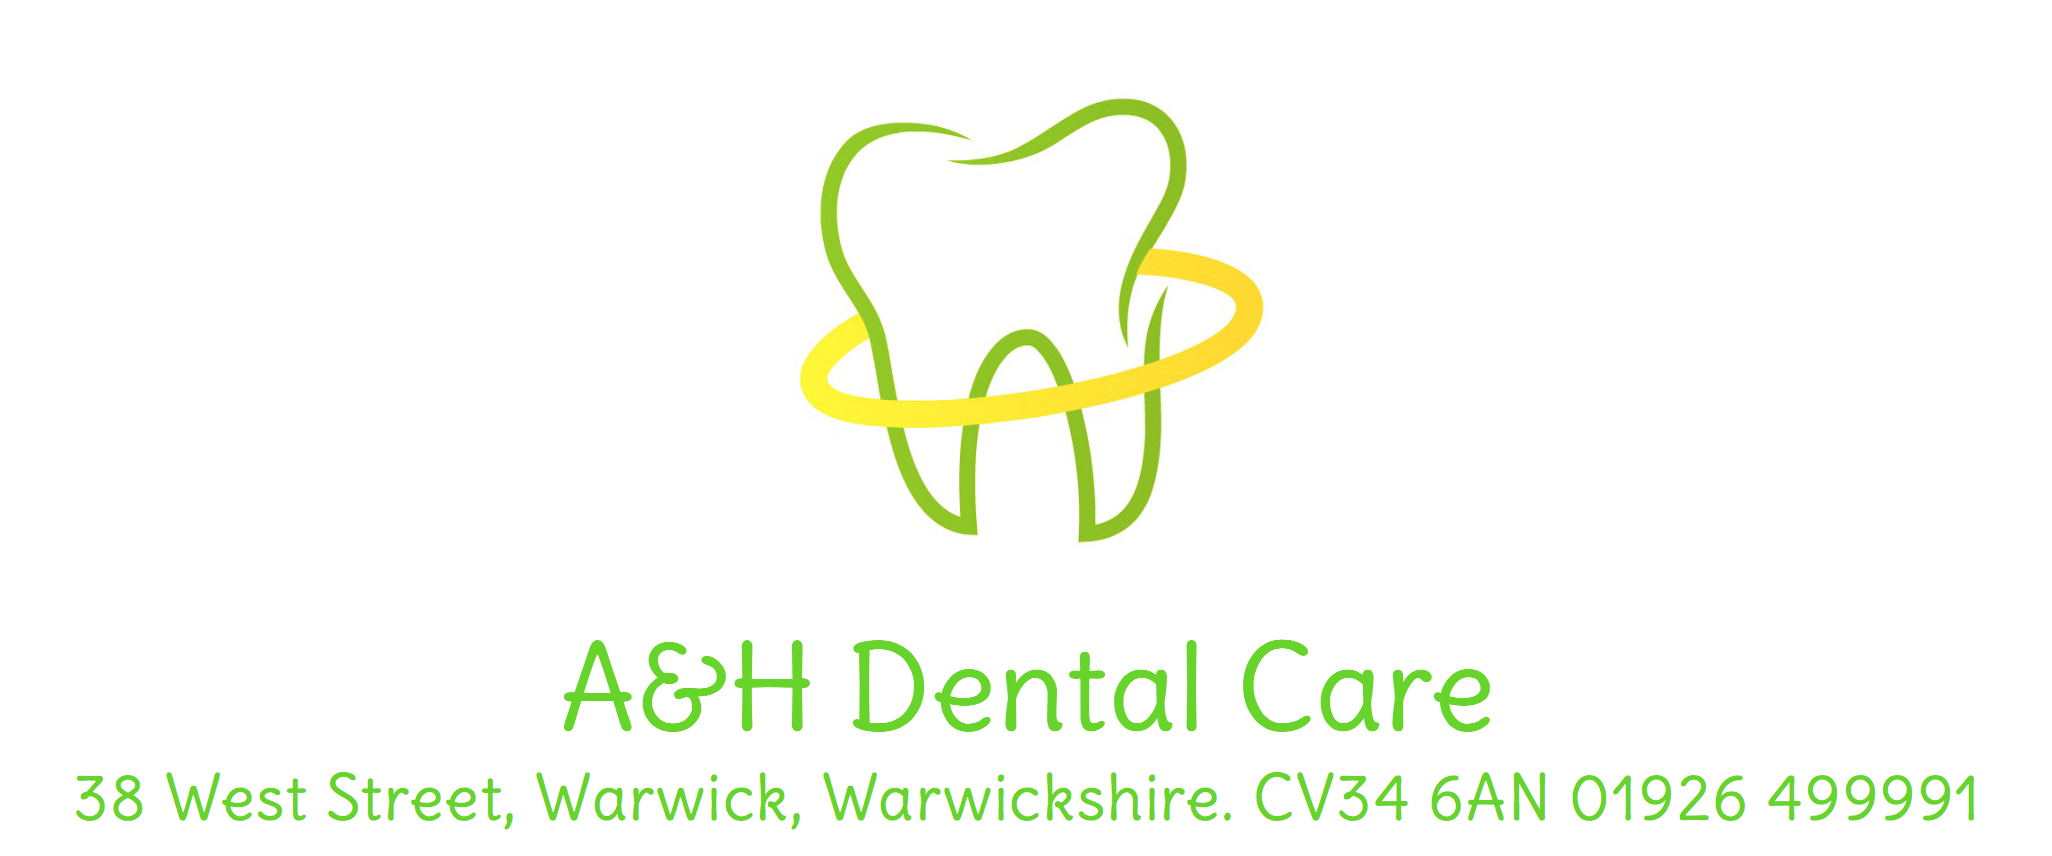 A and H Dental Care 38 West Street Warwick Warwickshire CV34 6AN 01926 499991